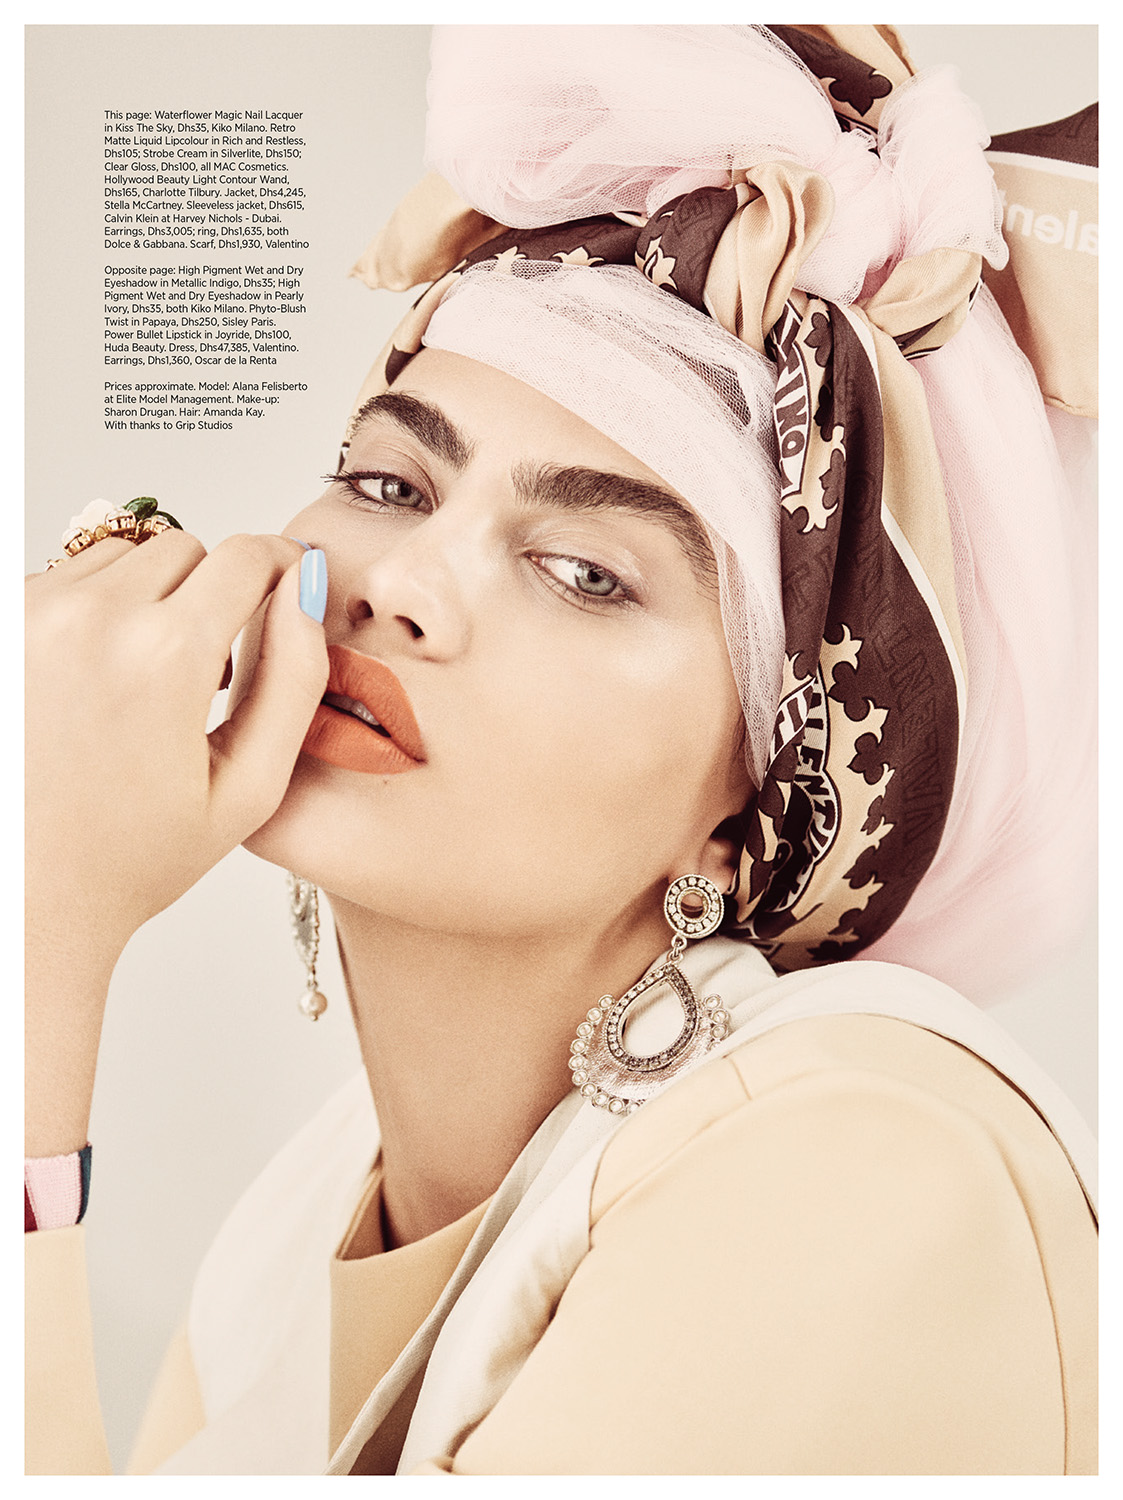 harpers_beauty_april_06.jpg